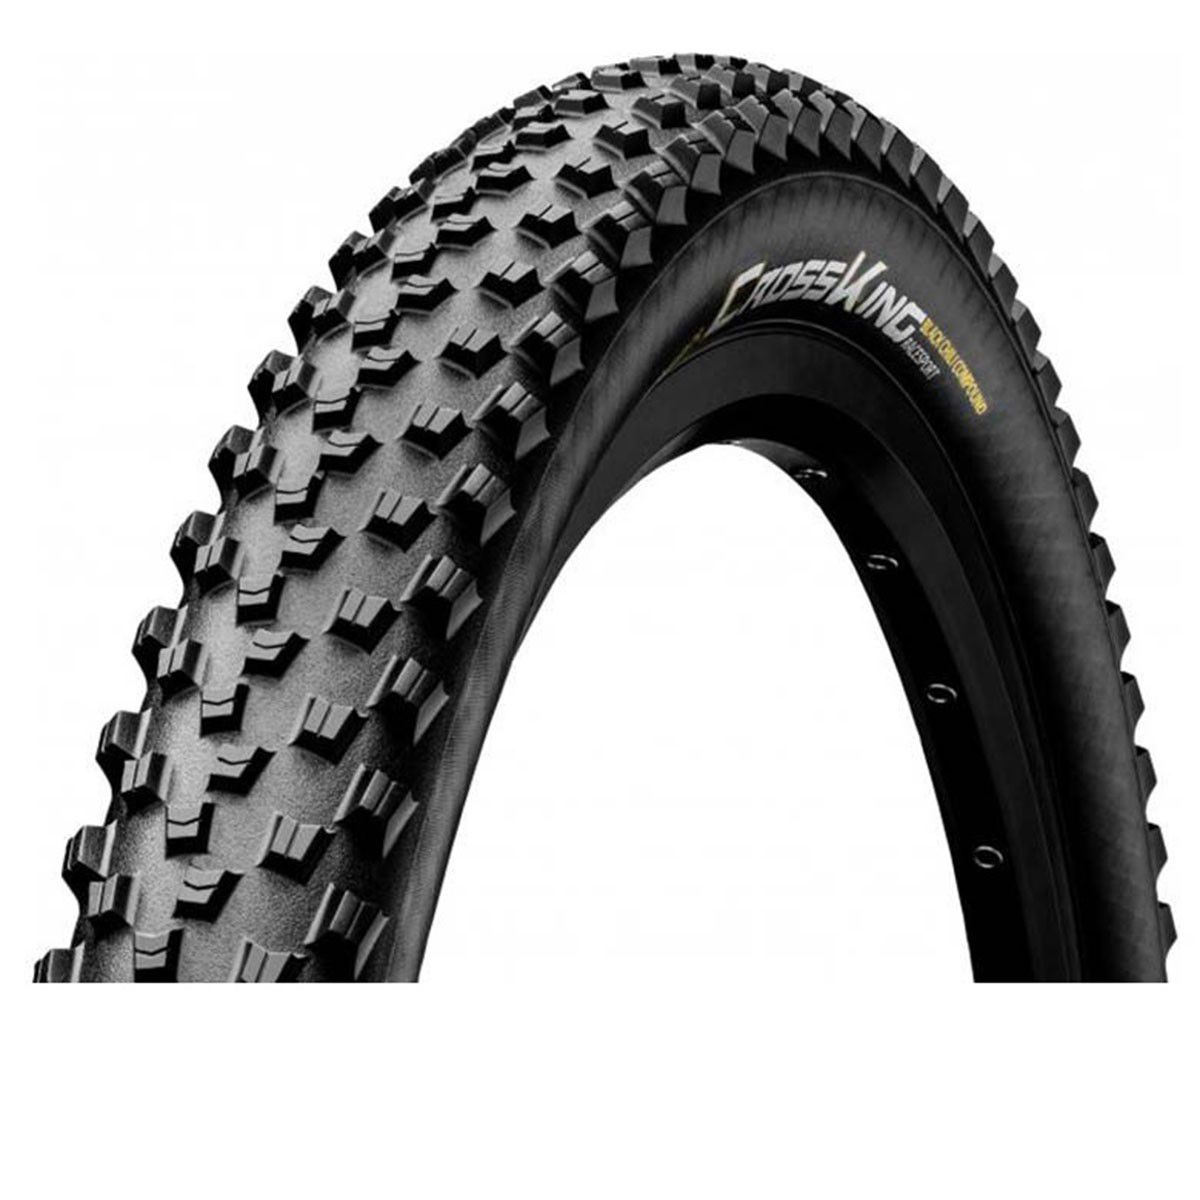 PNEU CONTINENTAL CROSS KING 29 X 2.2 PRETO